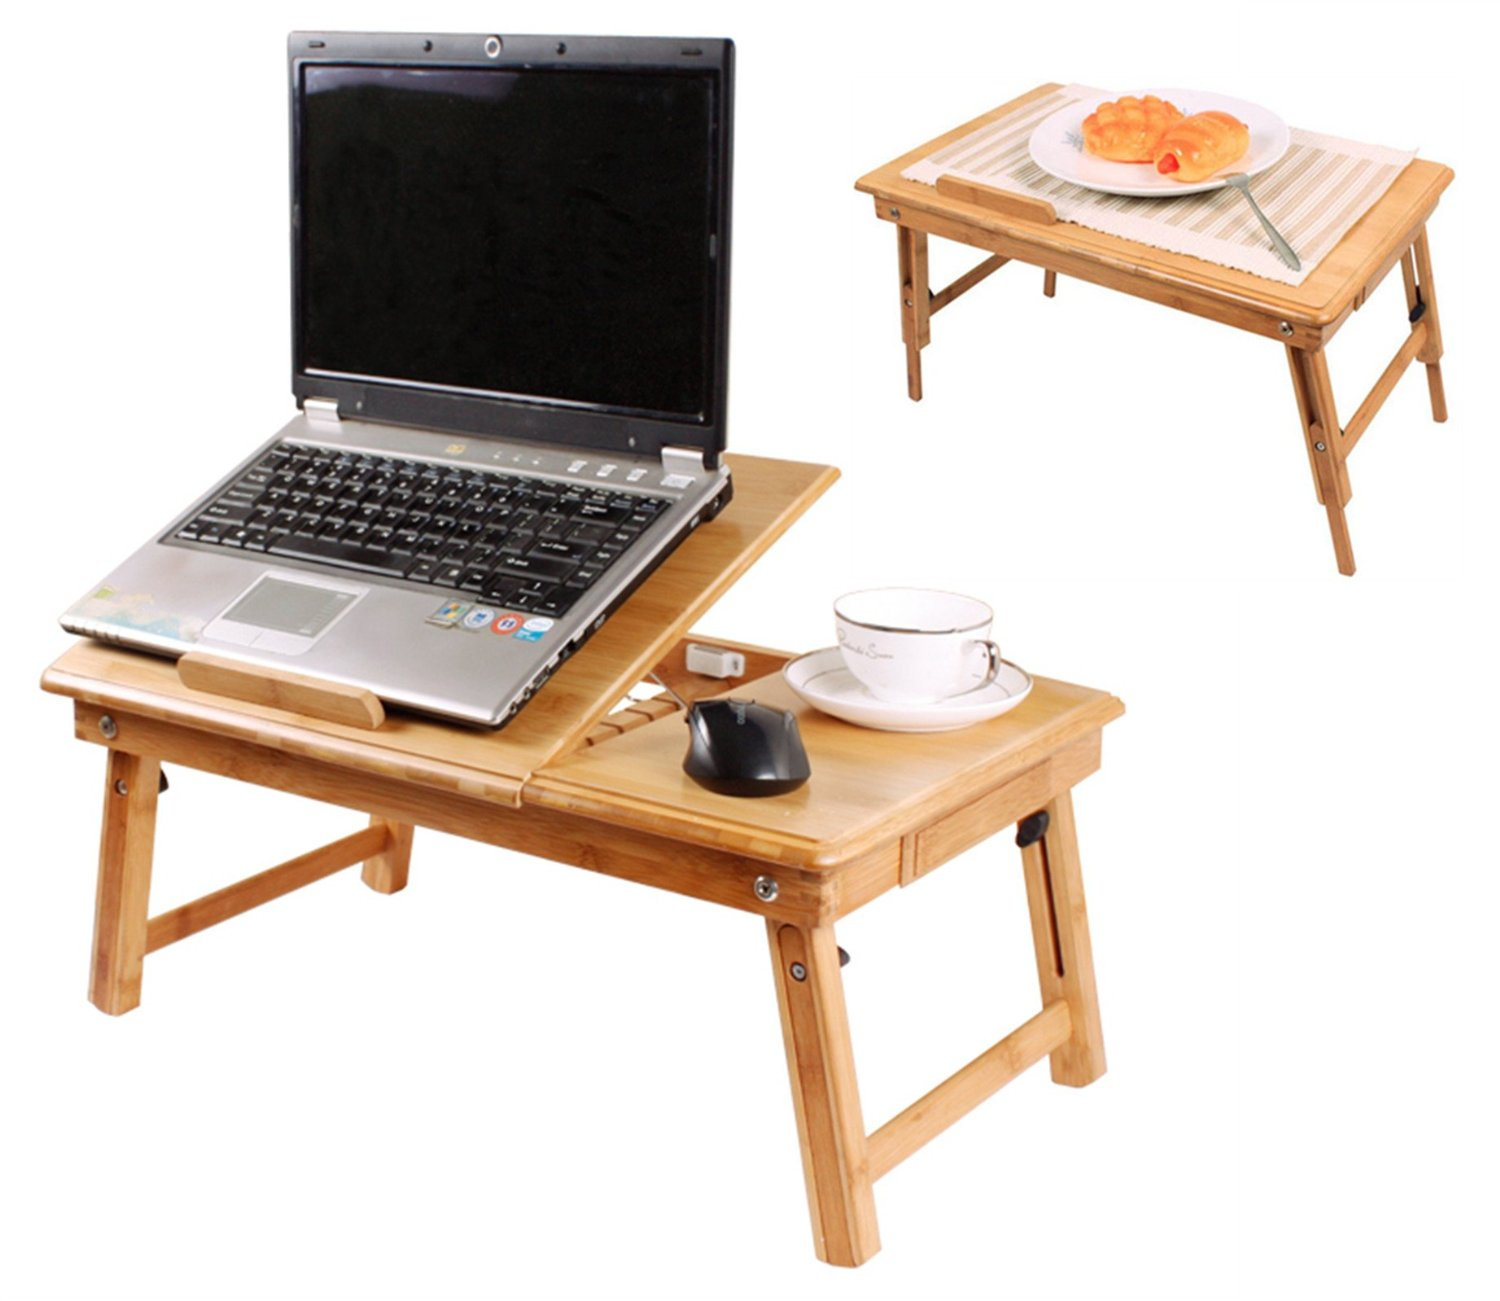 Table de lit pliable pour ordinateur portable avec ventilateur for Table de lit